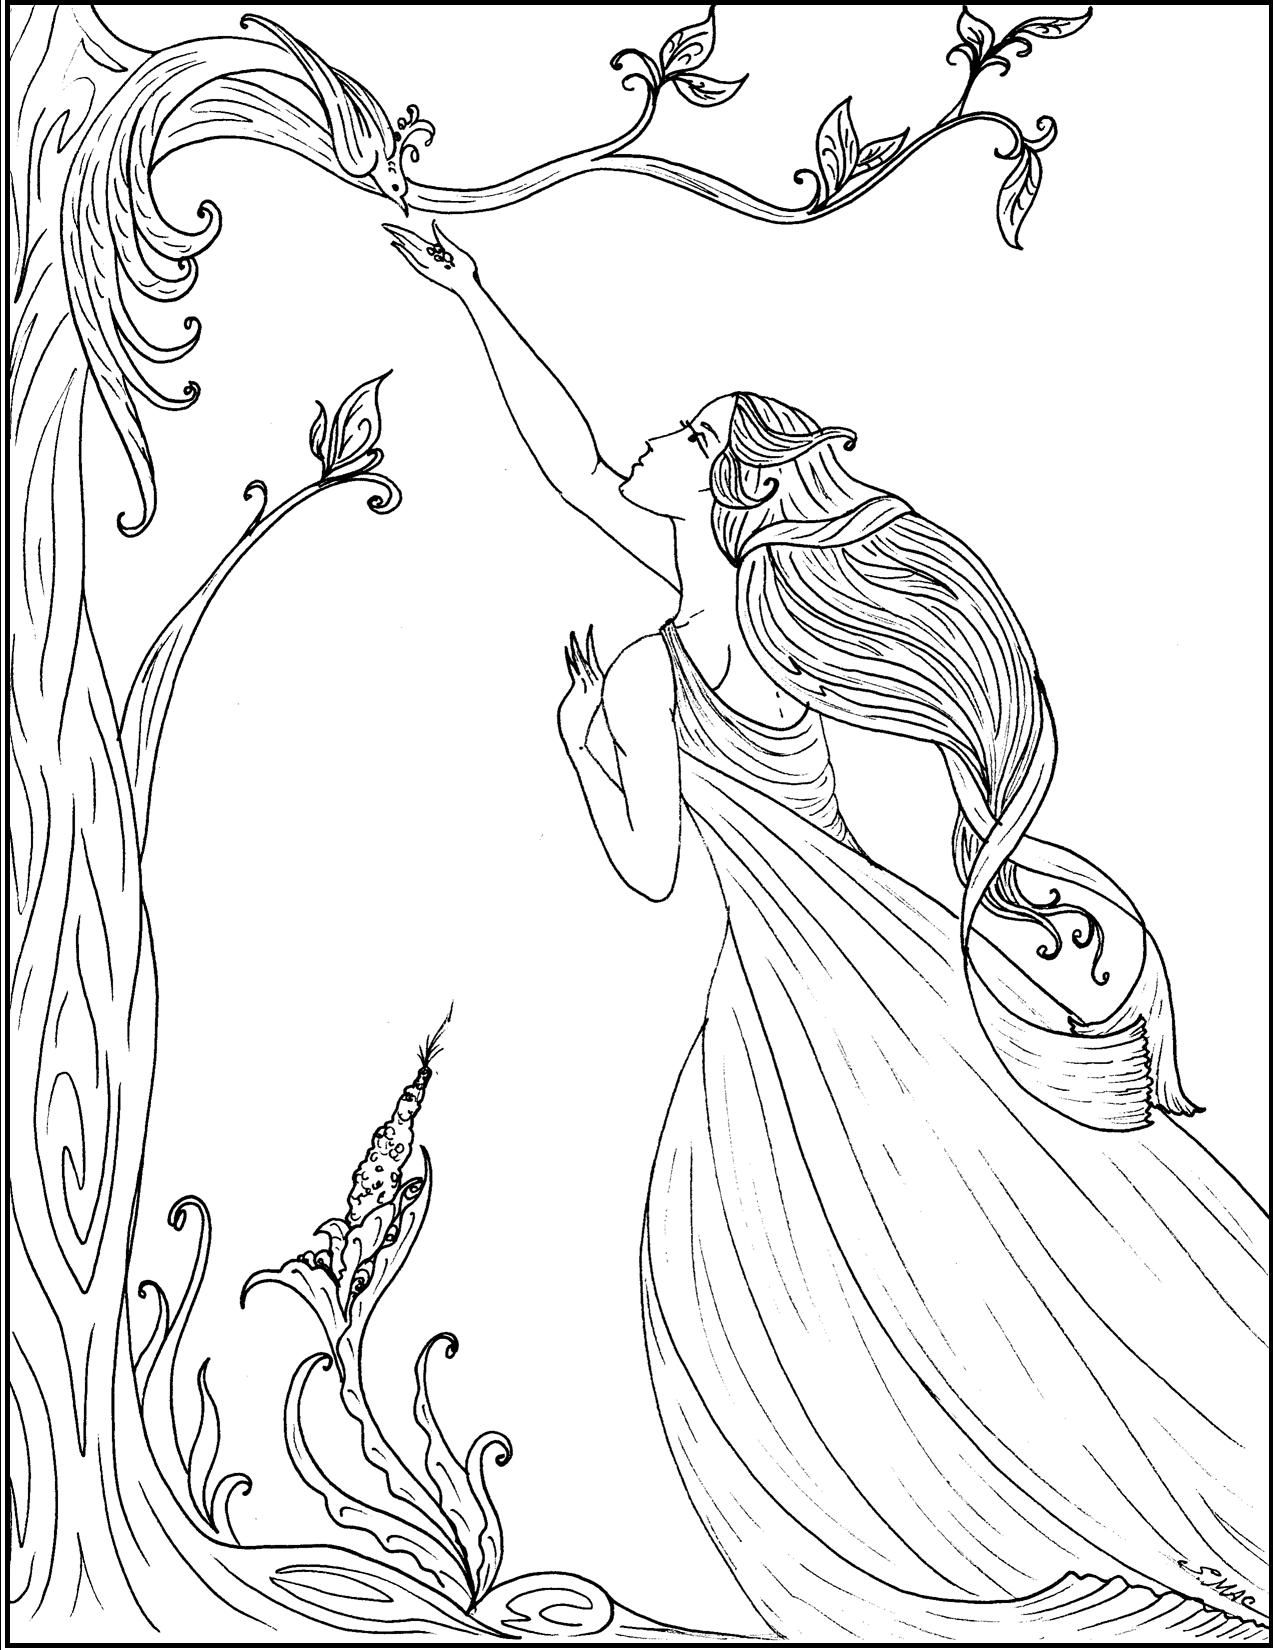 art nouveau coloring pages celebrate the beauty to be found in nature flowing lines and twisting curling vines create highly decorative images that spring